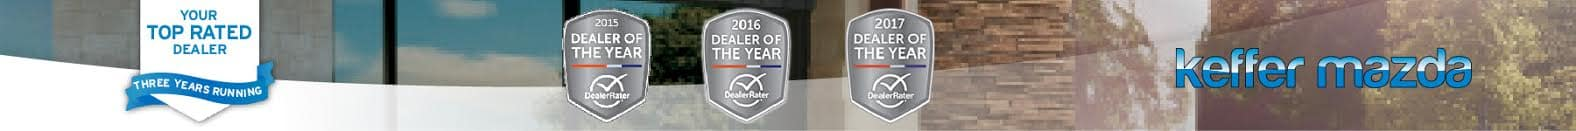 Top Rated Dealer Three Years Running